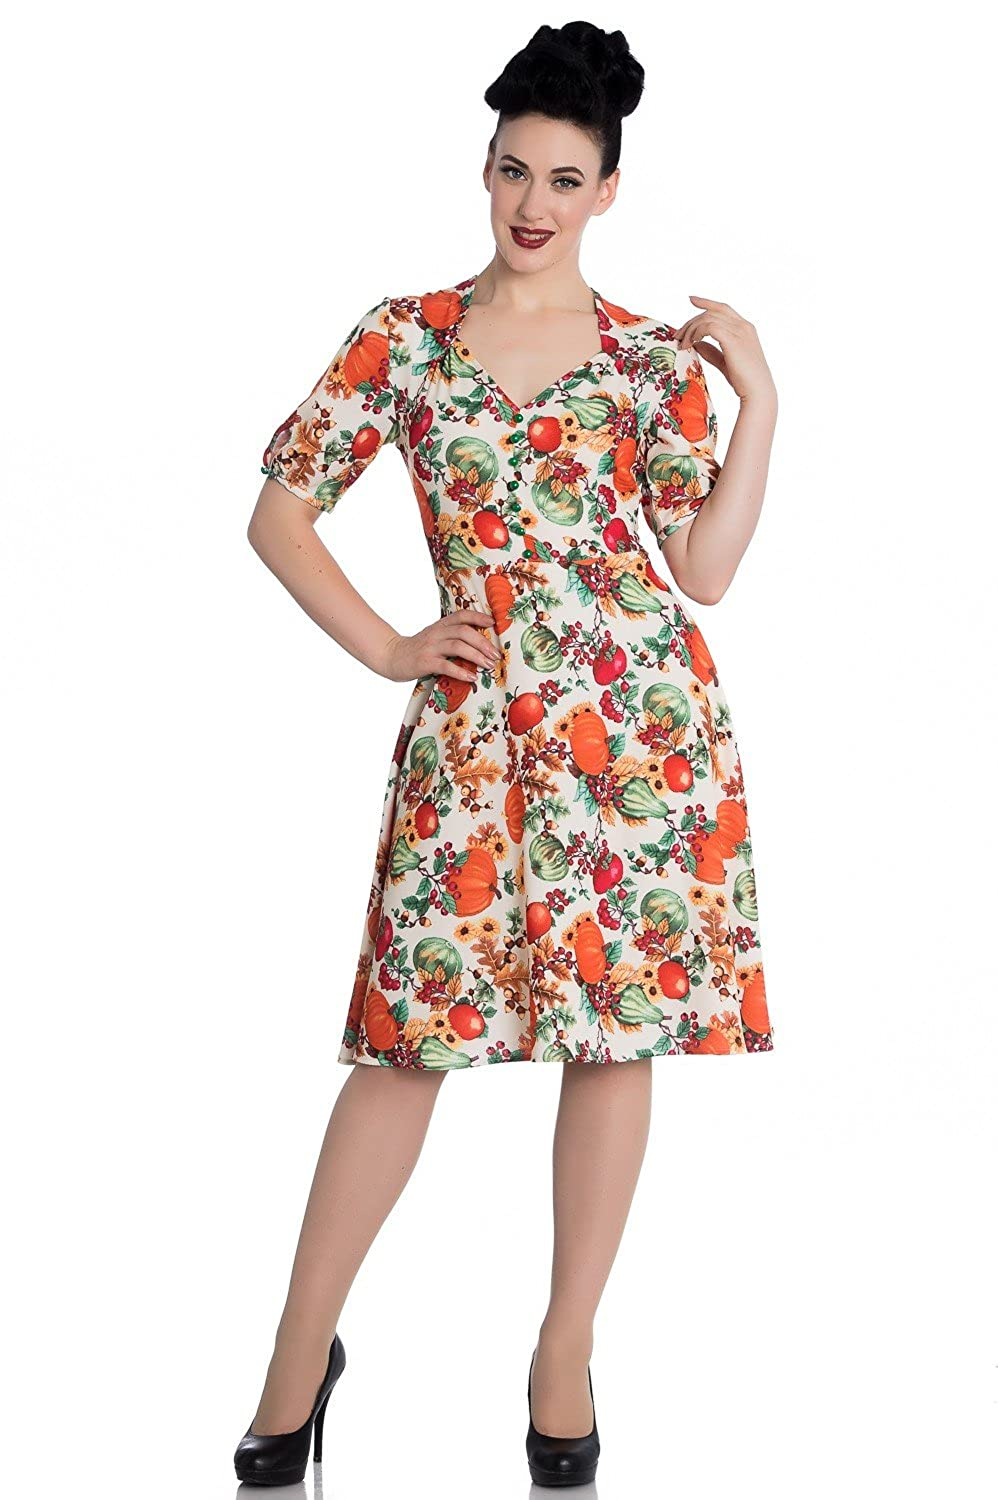 Vintage Retro Halloween Themed Clothing Hell Bunny 50s Retro Harvest Autumn Pumpkin Berries Cocktail Party Flare Dress $29.99 AT vintagedancer.com